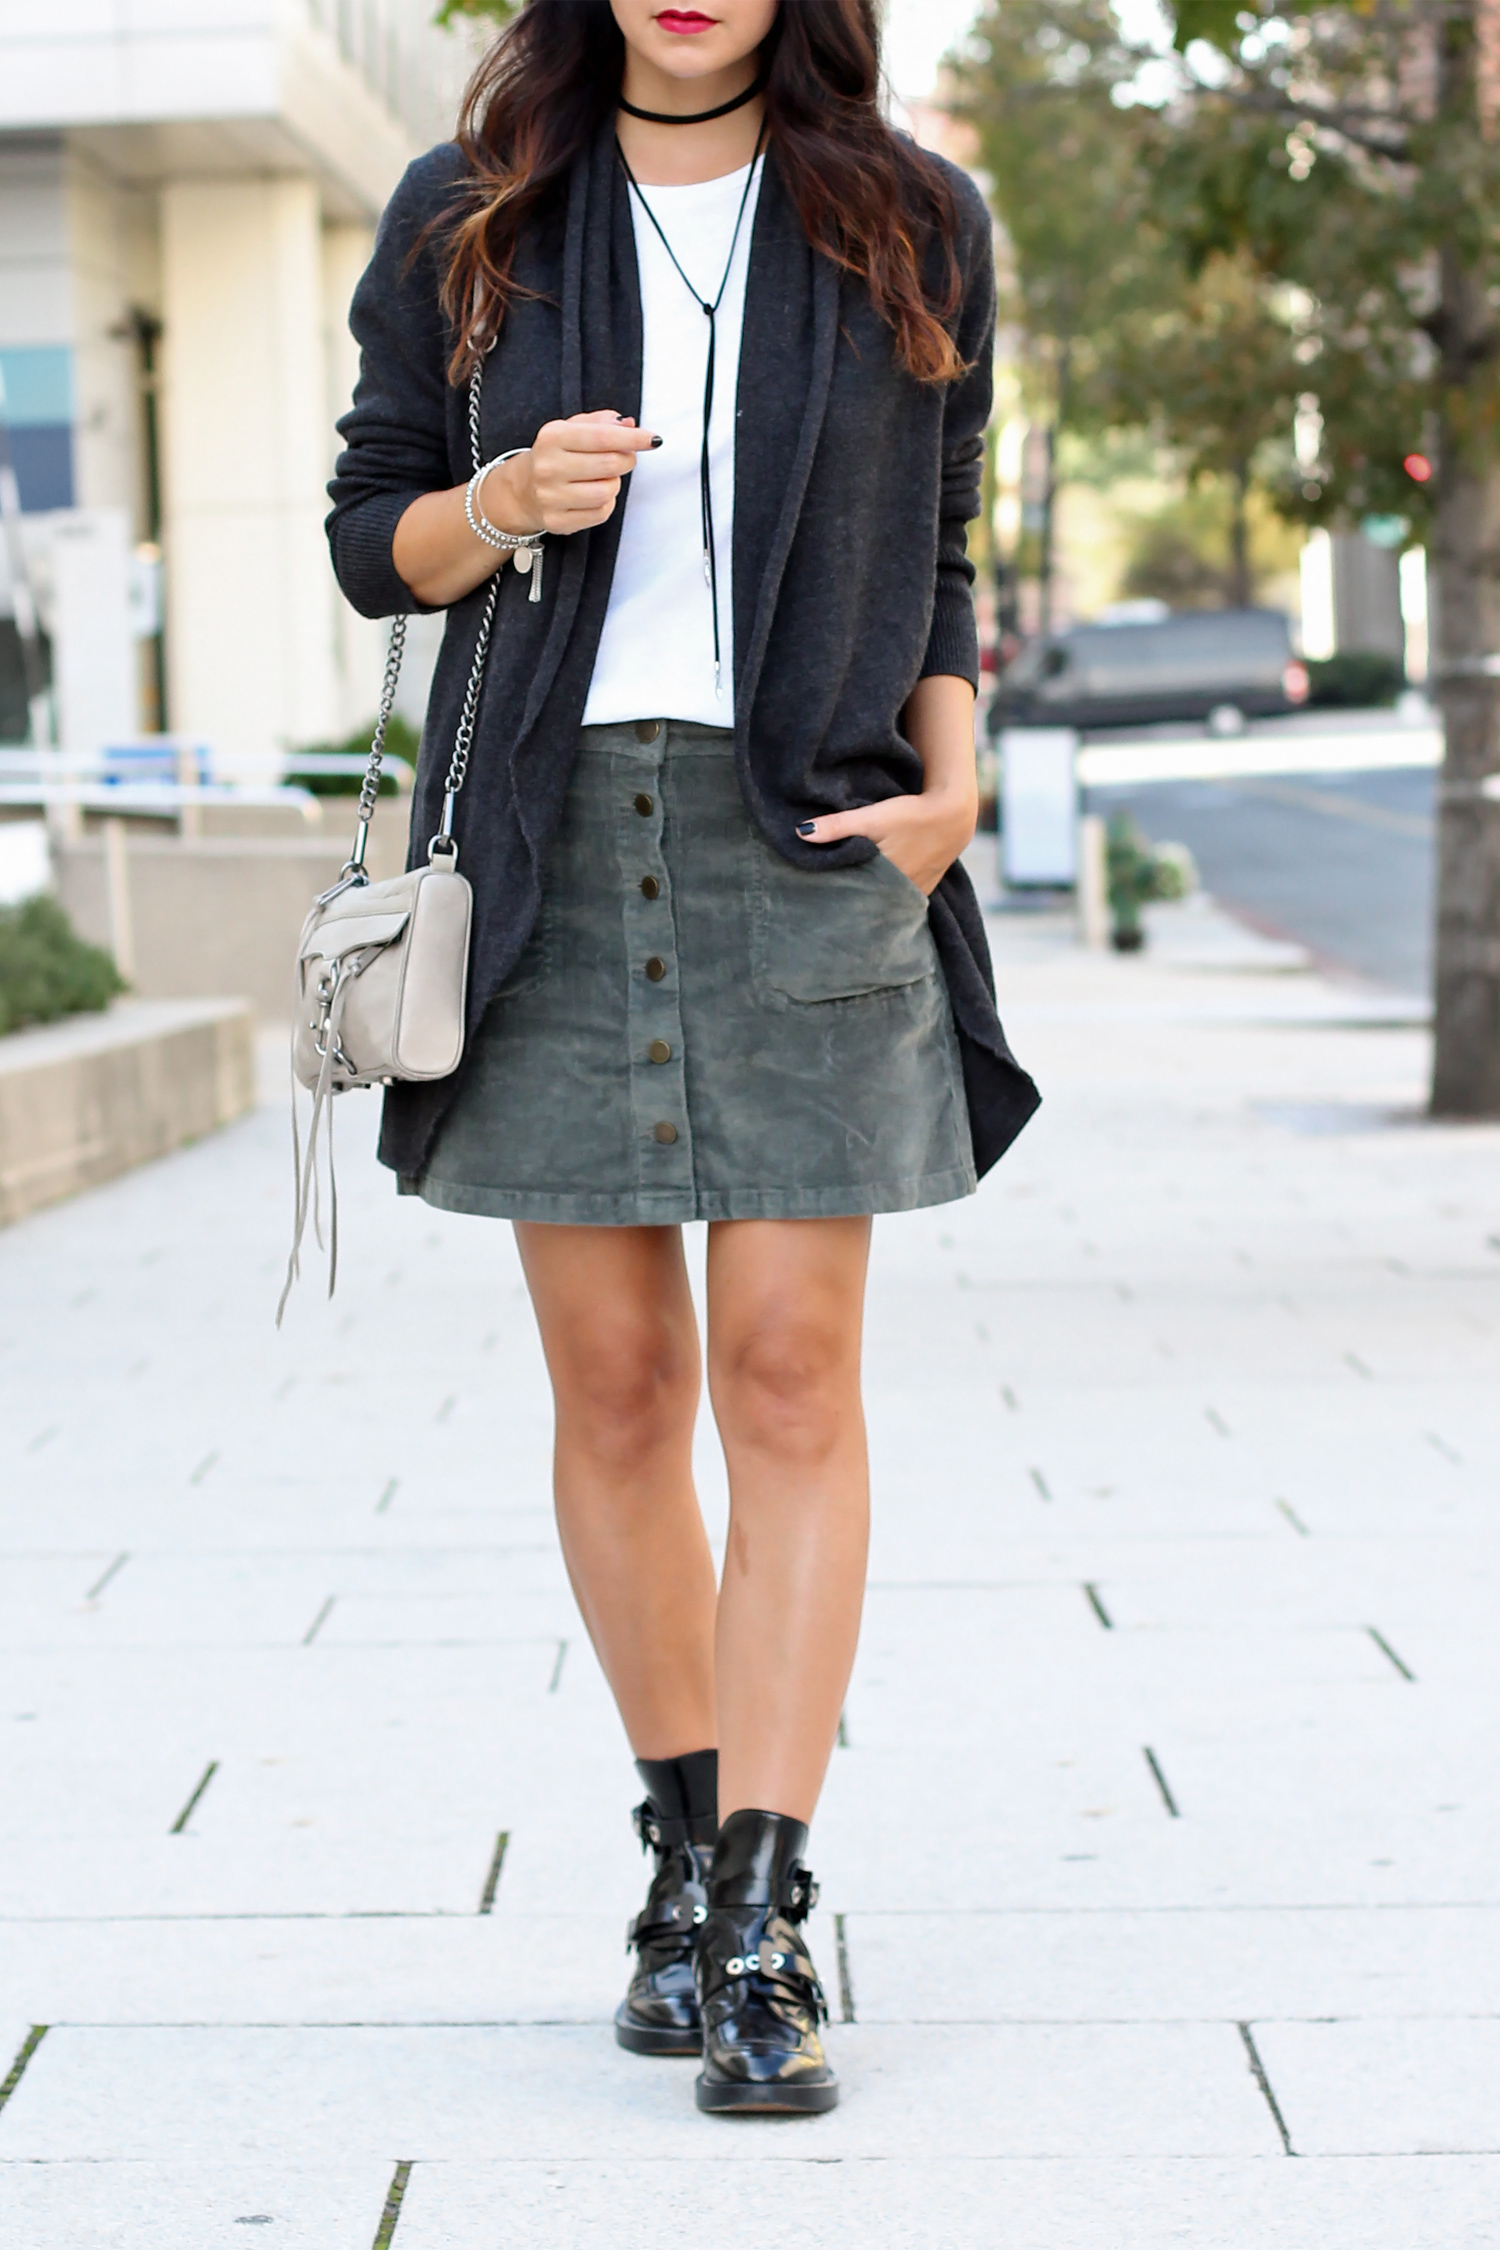 c8aa3a4318 Wearing Skirt With Ankle Boots – DACC